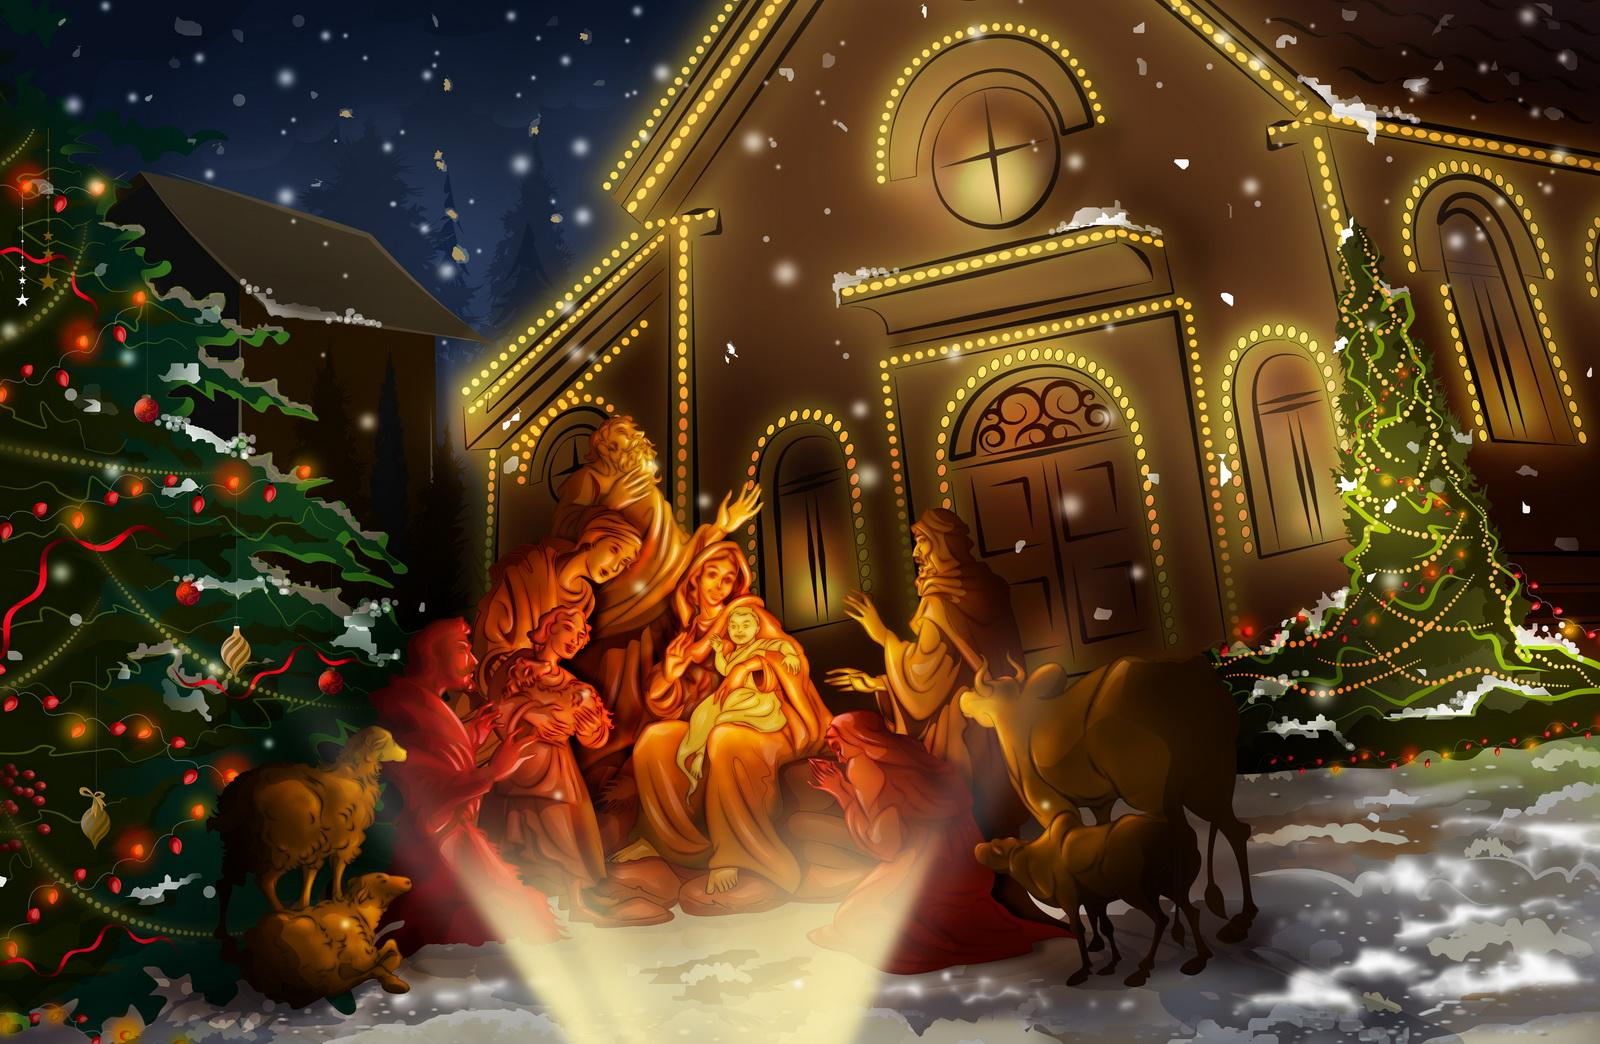 Nativity scene Wallpaper Background